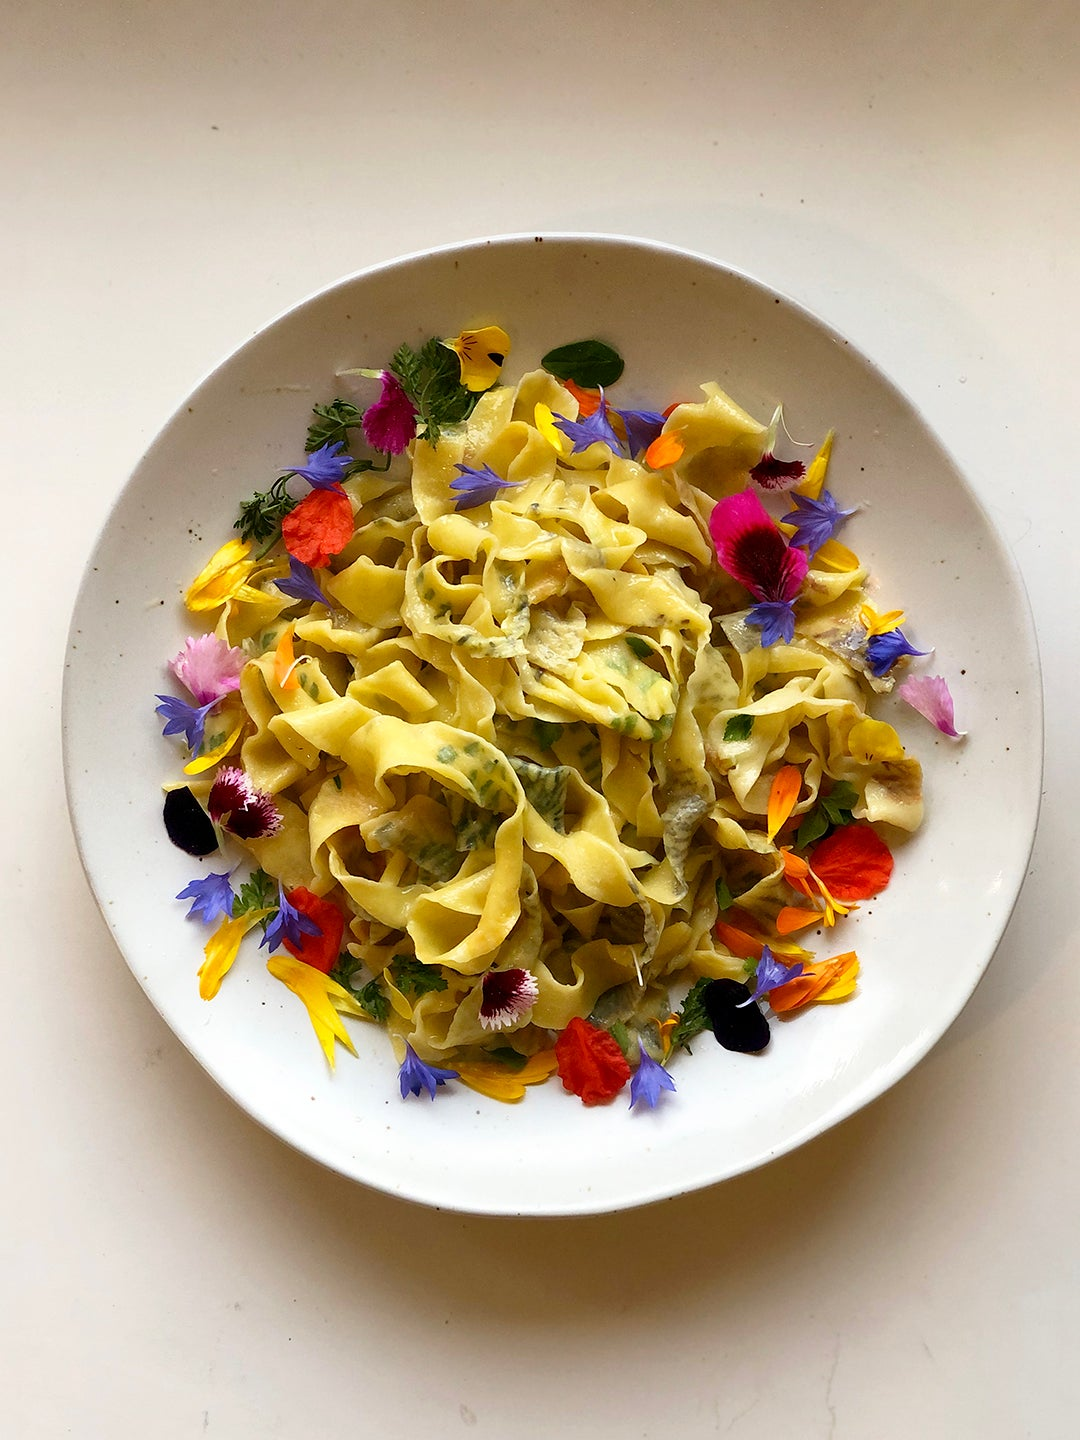 bowl of pasta with flowers